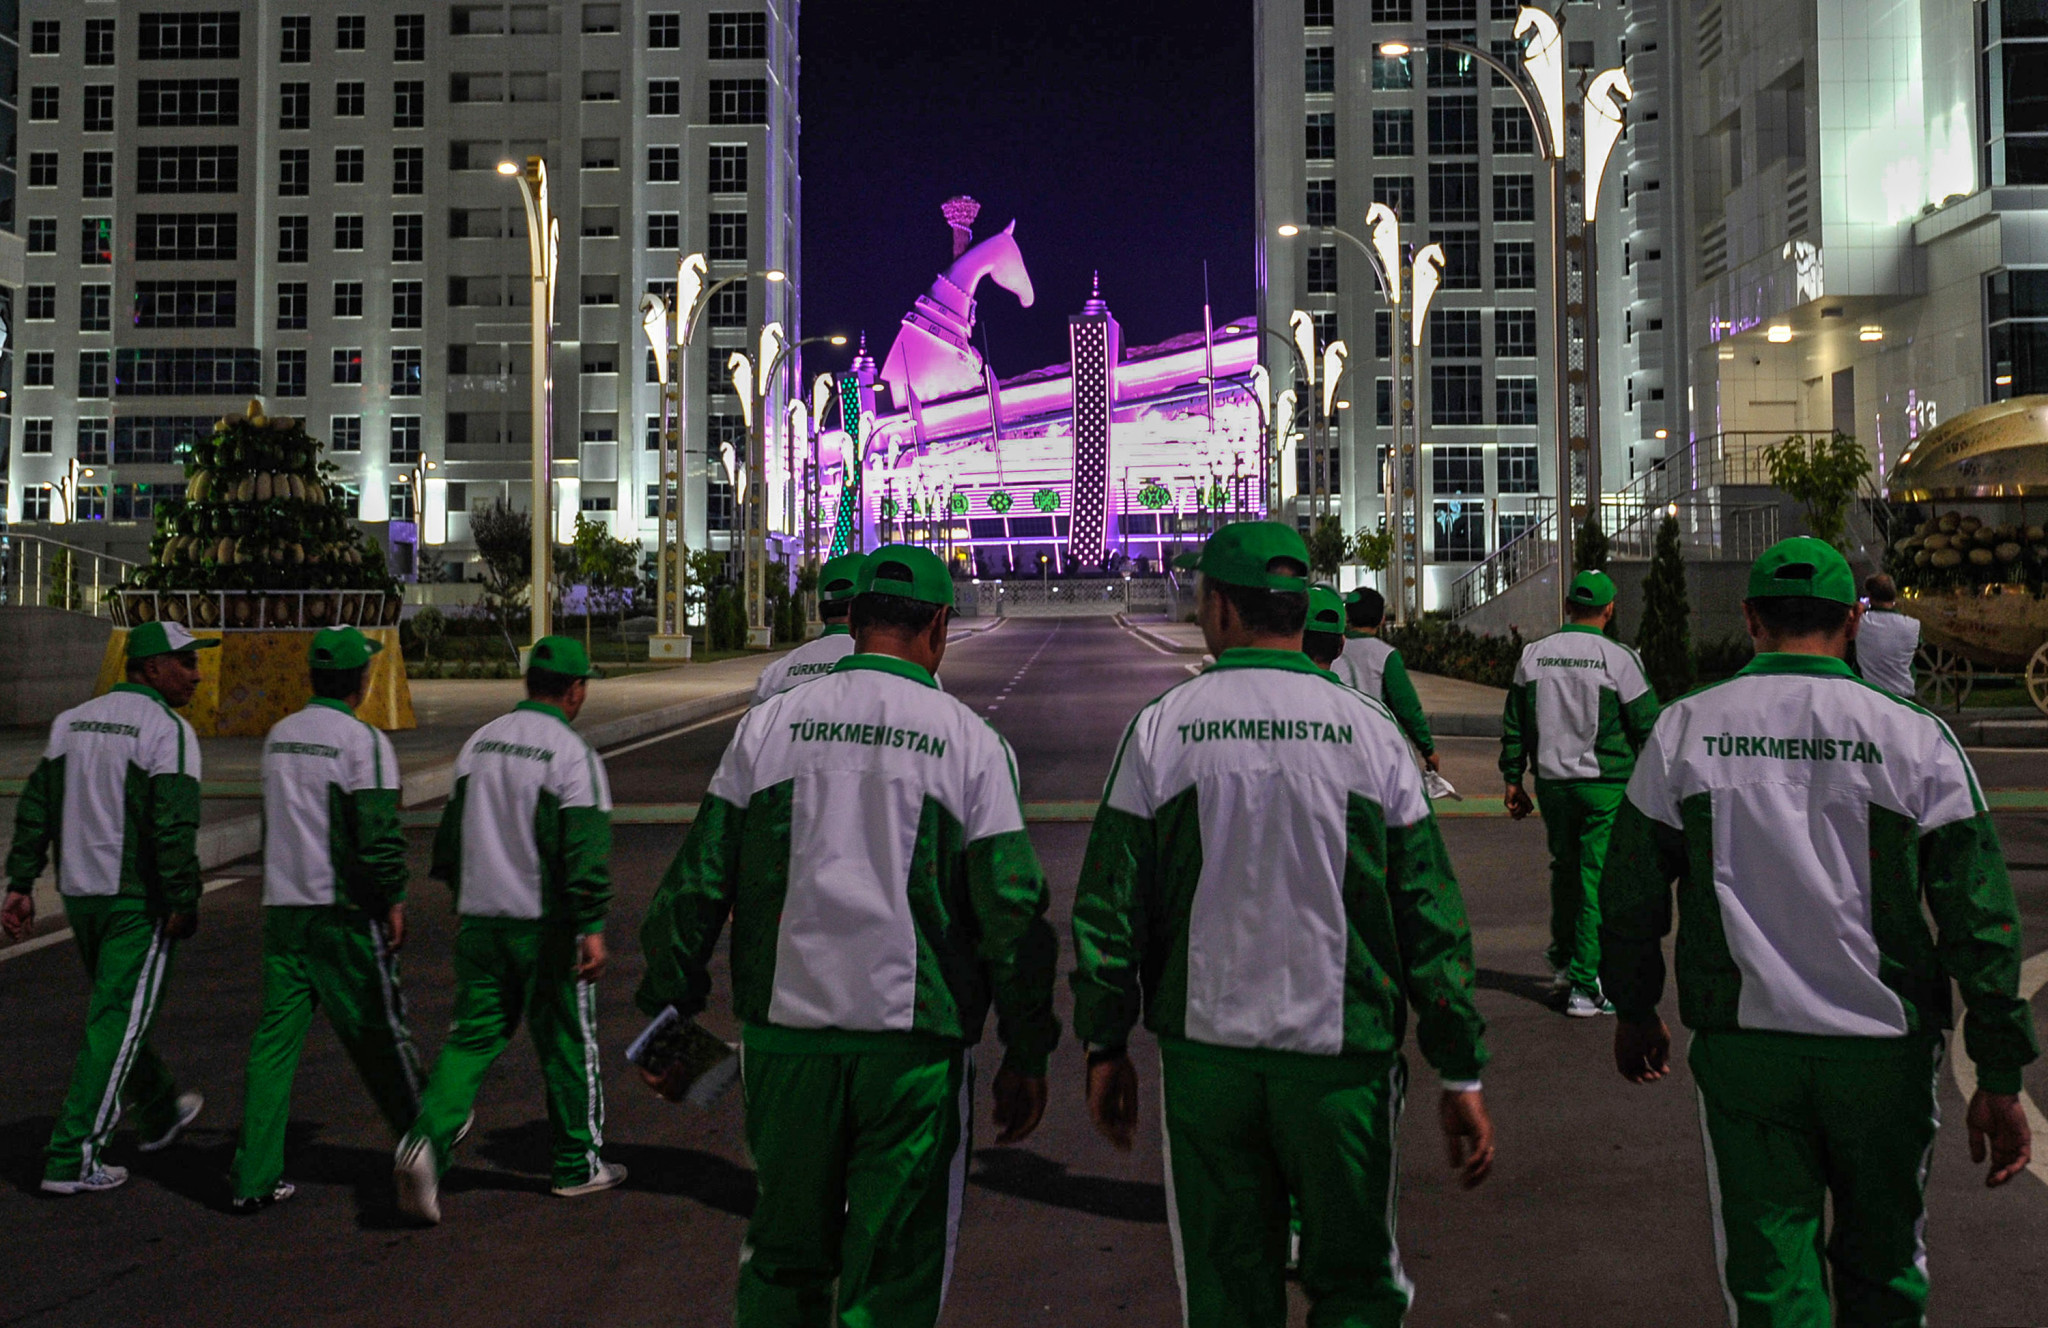 Turkmenistan is gearing up to host the biggest event in the country's history ©Getty Images